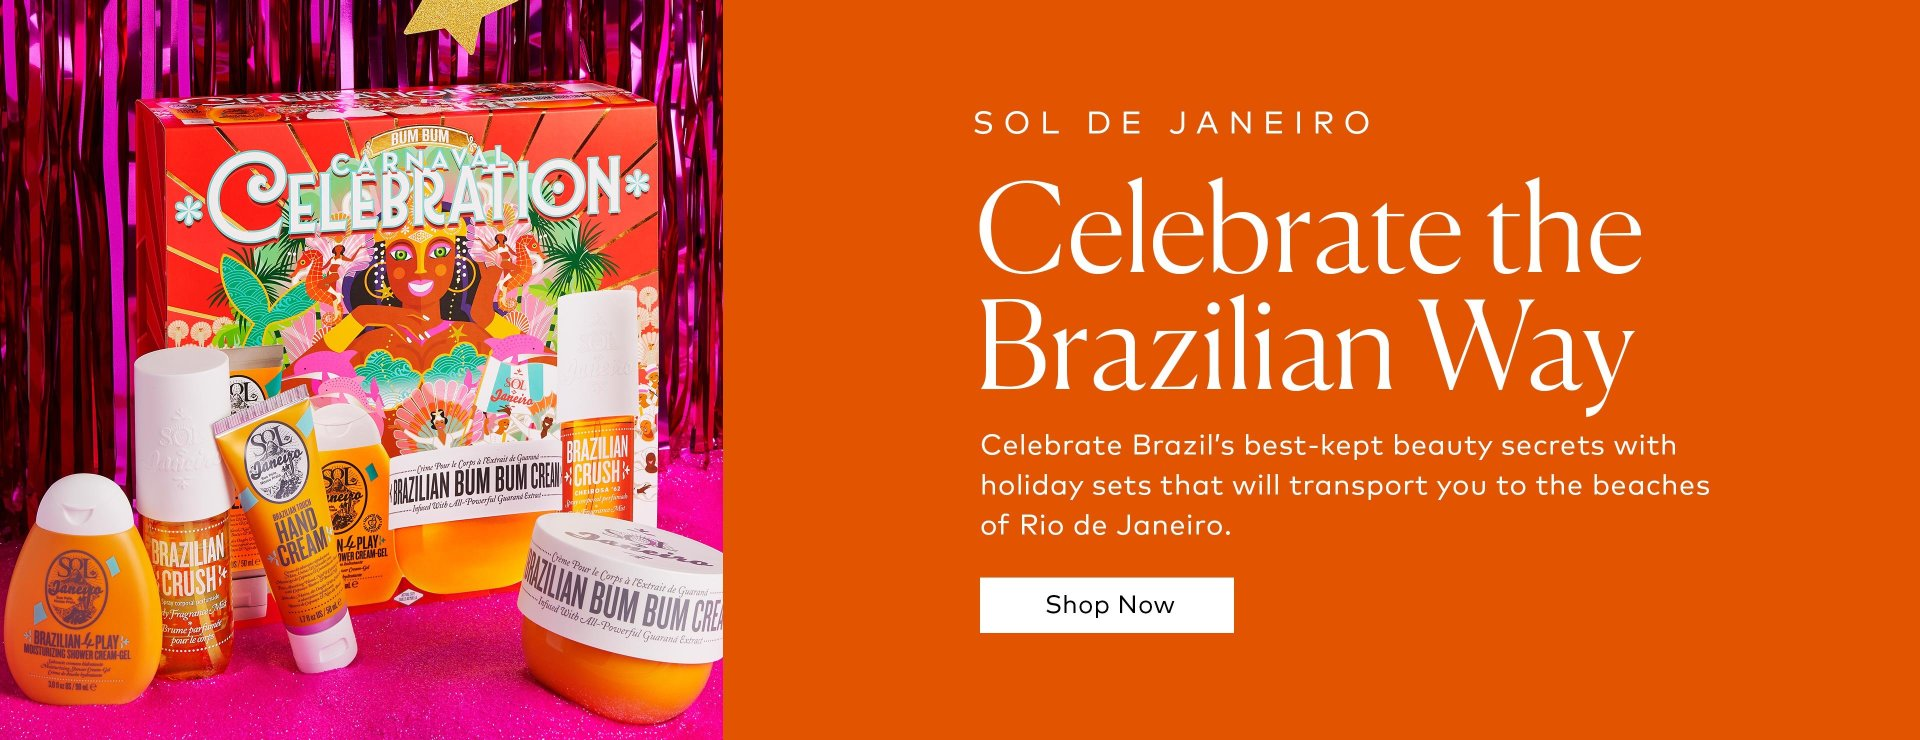 Shop Sol De Janeiro's Holiday Sets on Beautylish.com